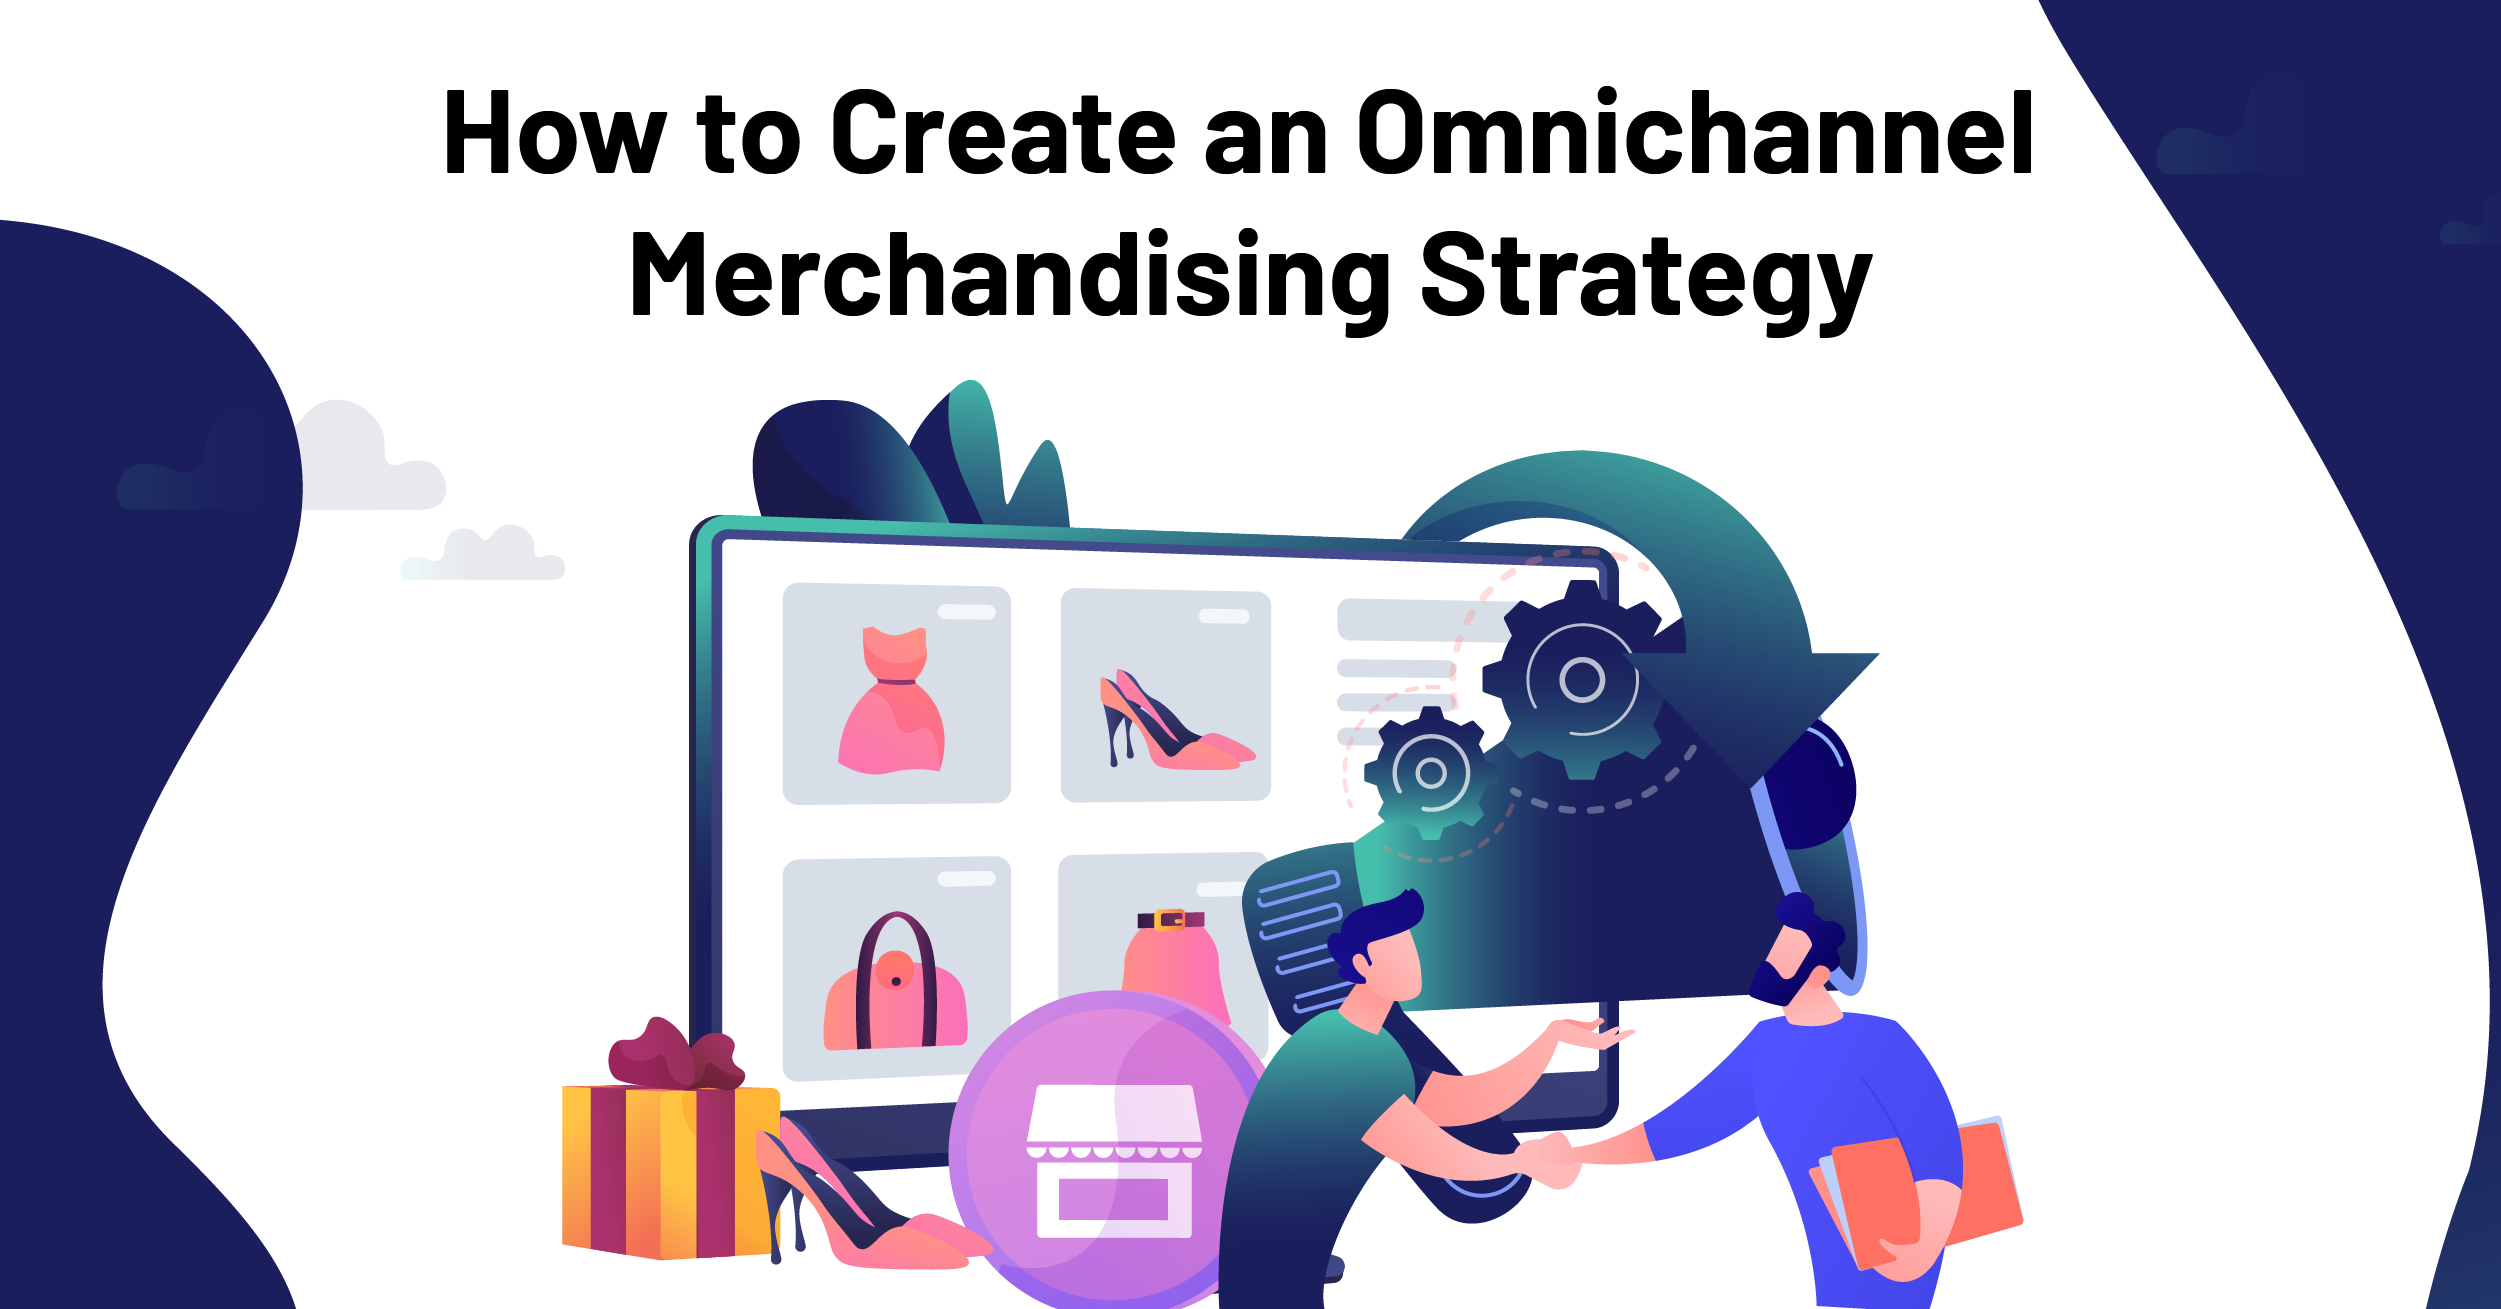 How to Create an Omnichannel Merchandising Strategy